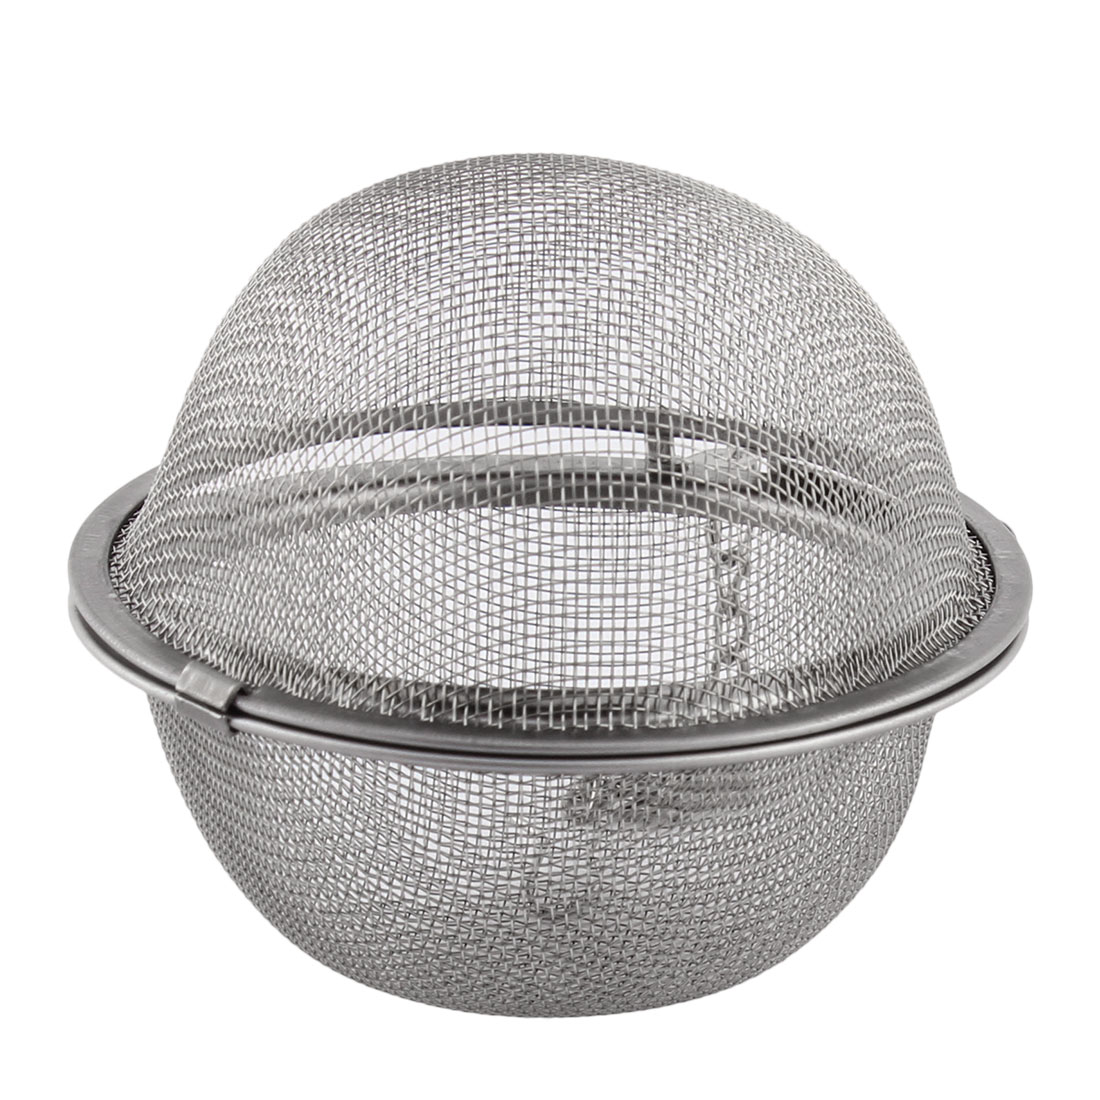 Restaurant Stainless Steel Mesh Tea Infuser Strainer Filter Basket 5.3cm Dia